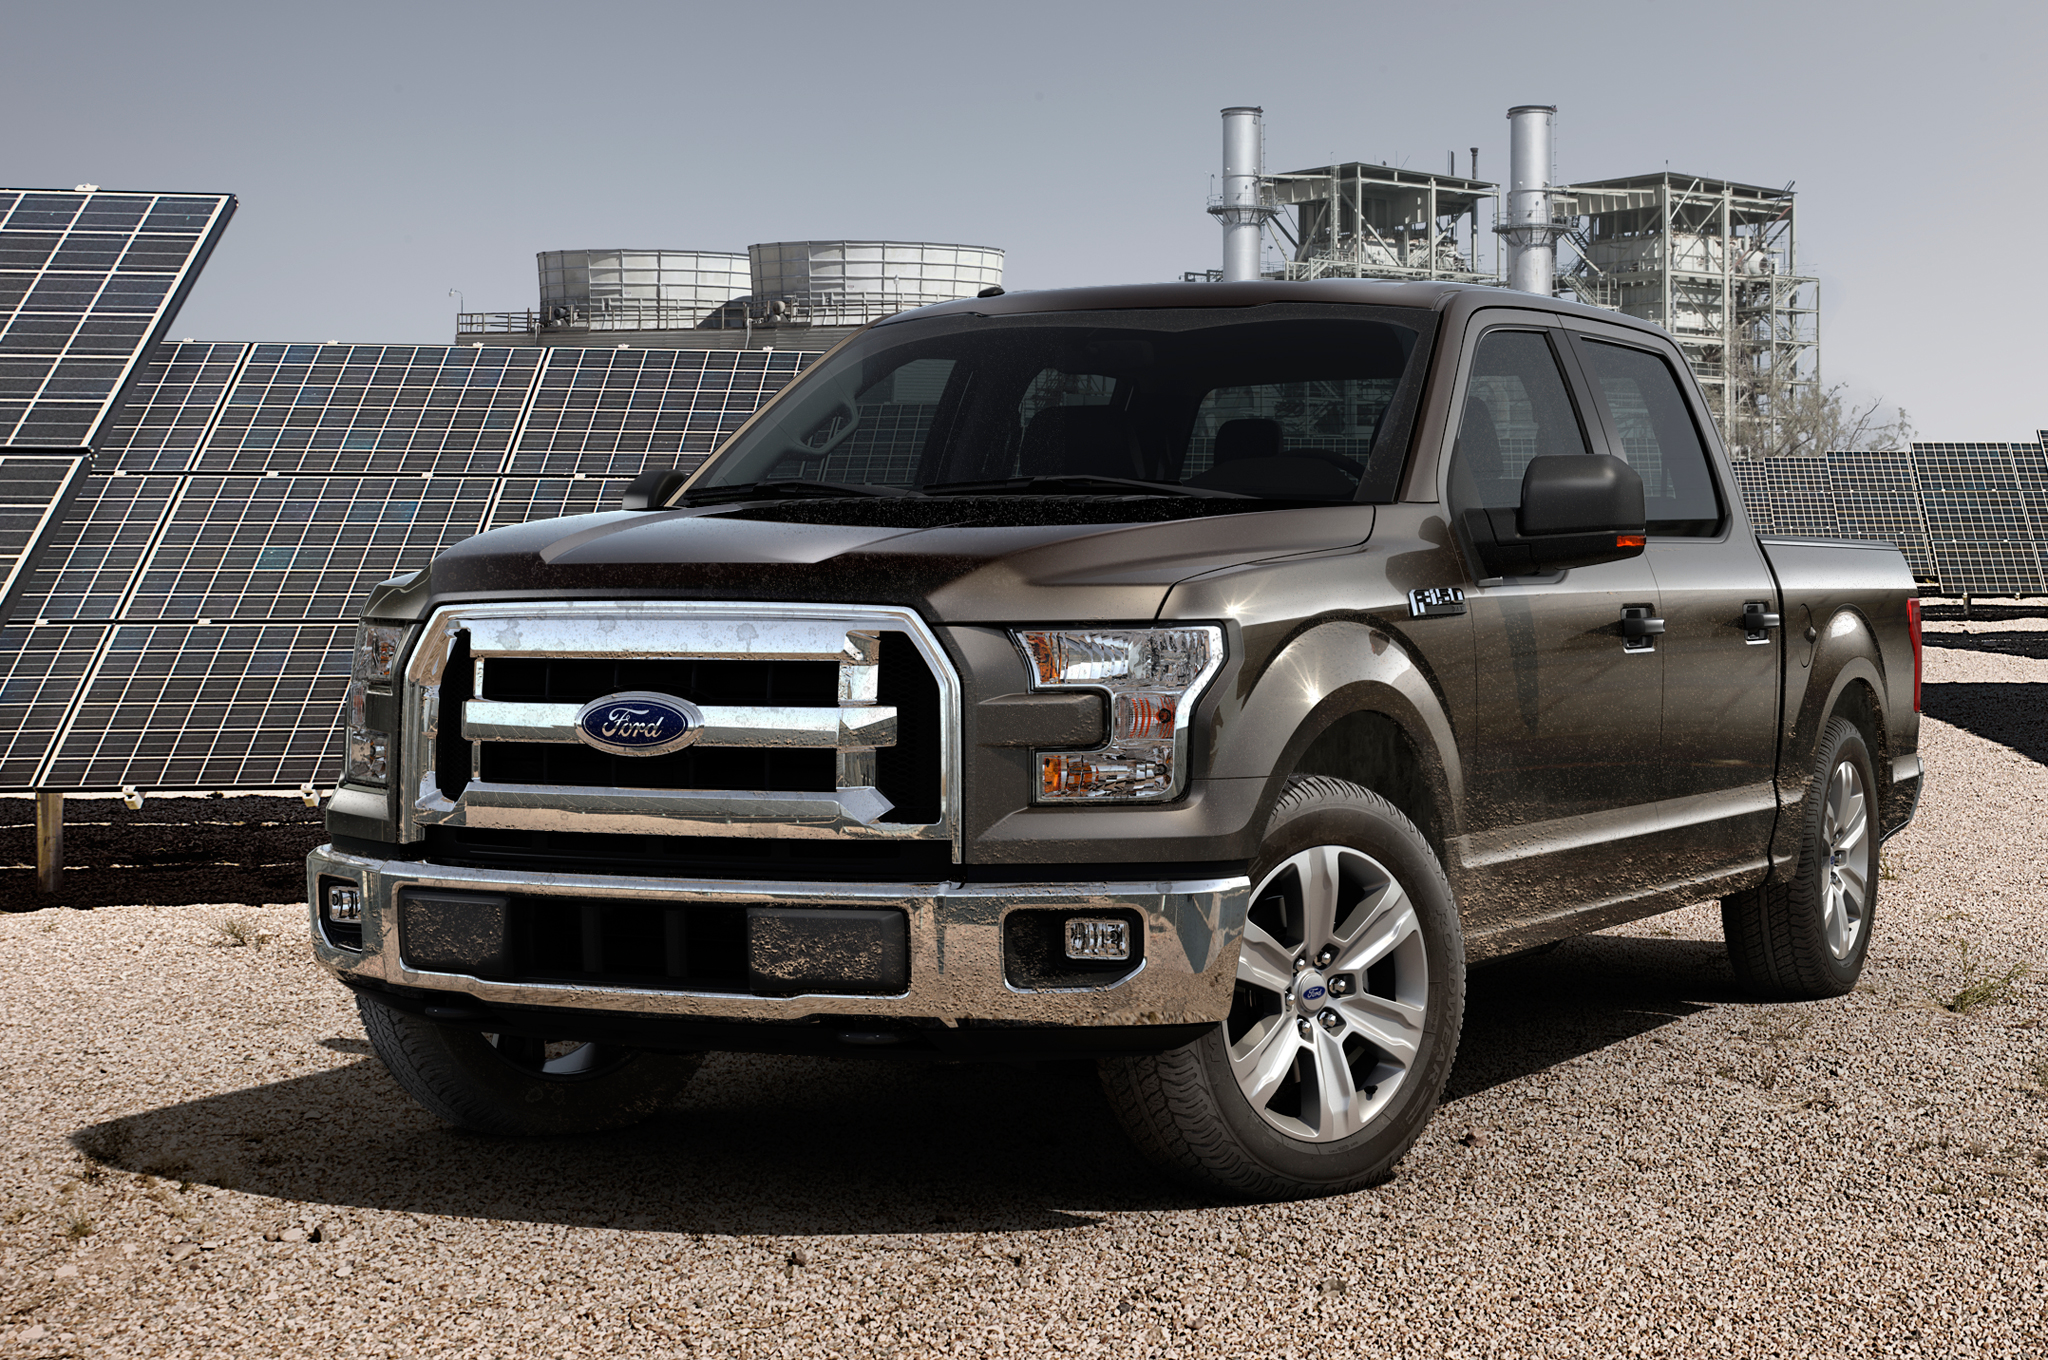 2015 ford f 150 2 7l ecoboost rated 325 hp 375 lb ft tows max 8500 lbs [ 2048 x 1360 Pixel ]